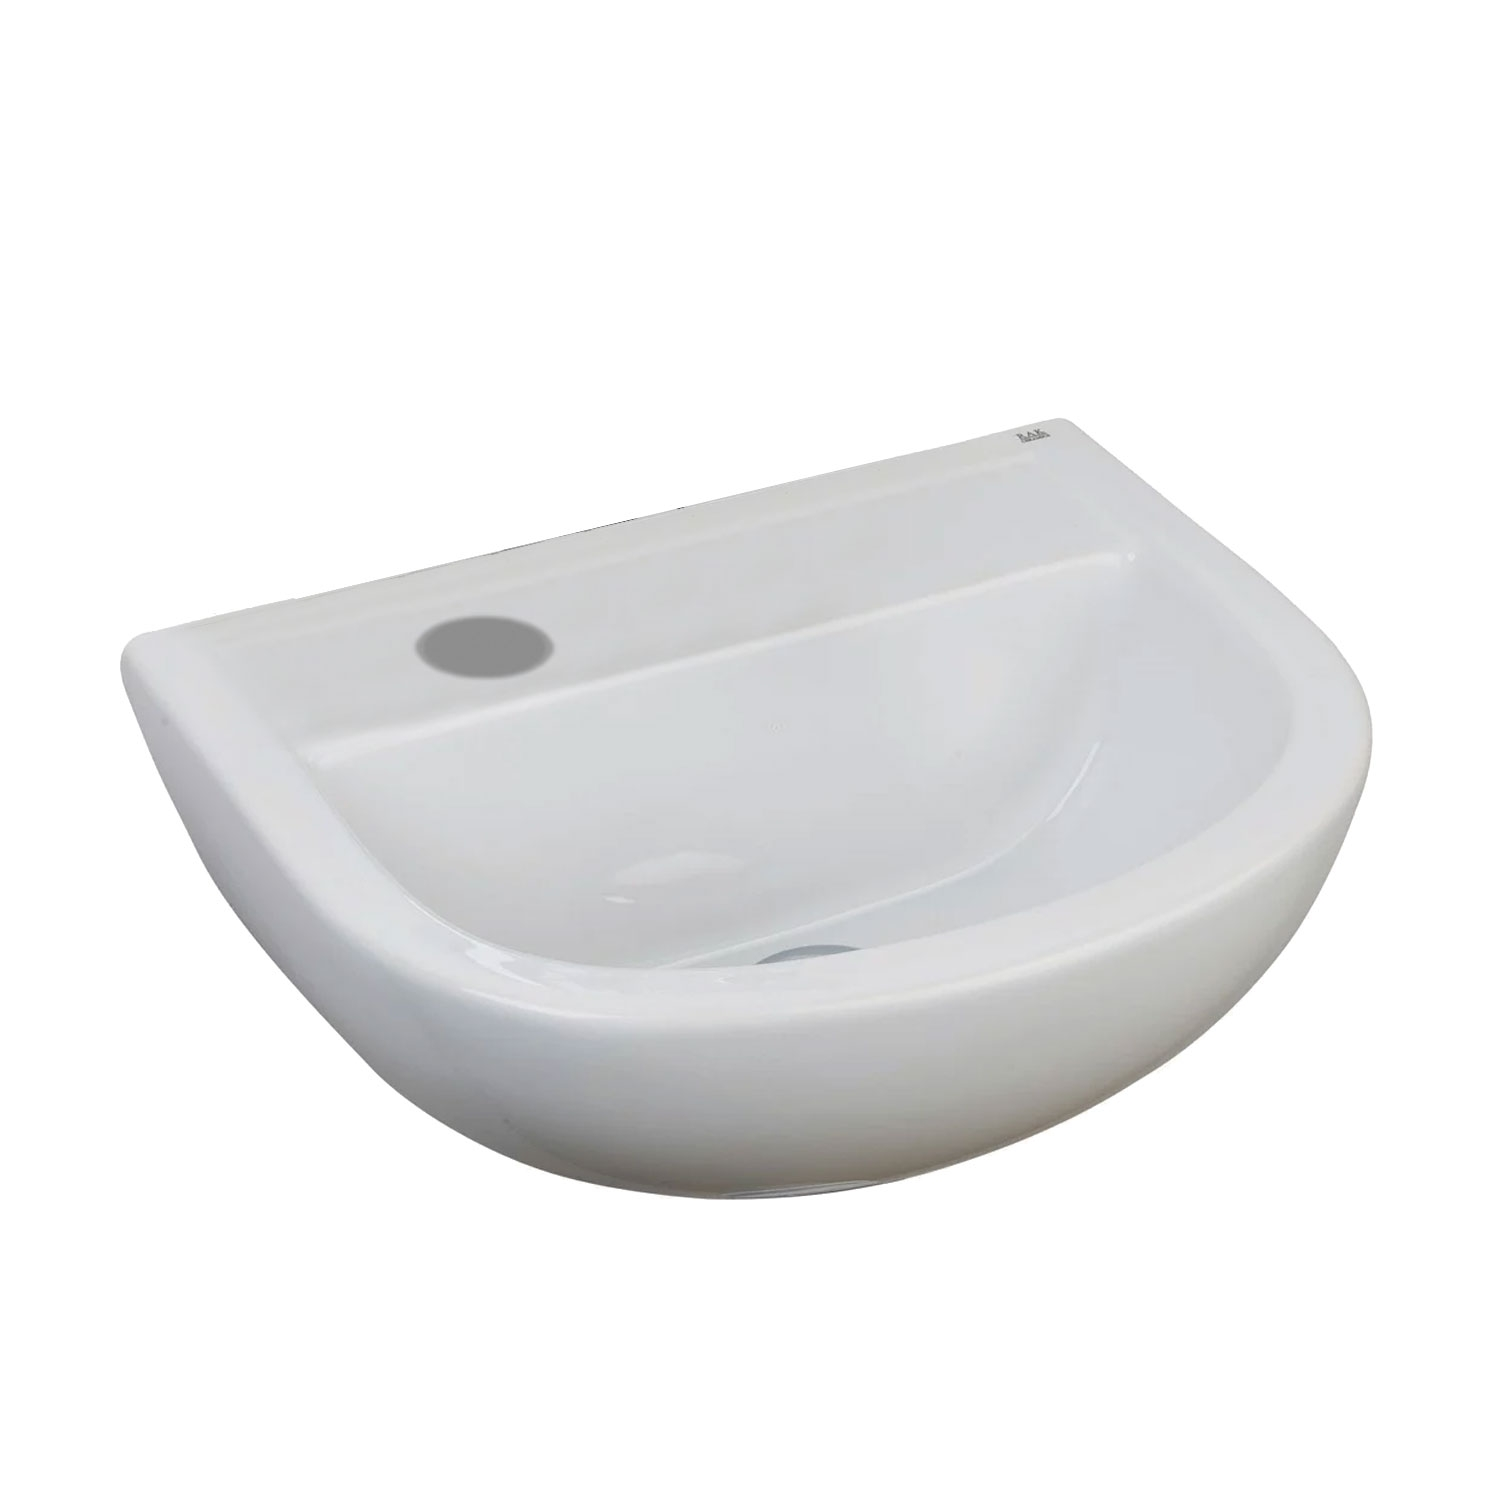 RAK Compact Special Needs Cloakroom Basin 380mm Wide 1 RH Tap Hole-0